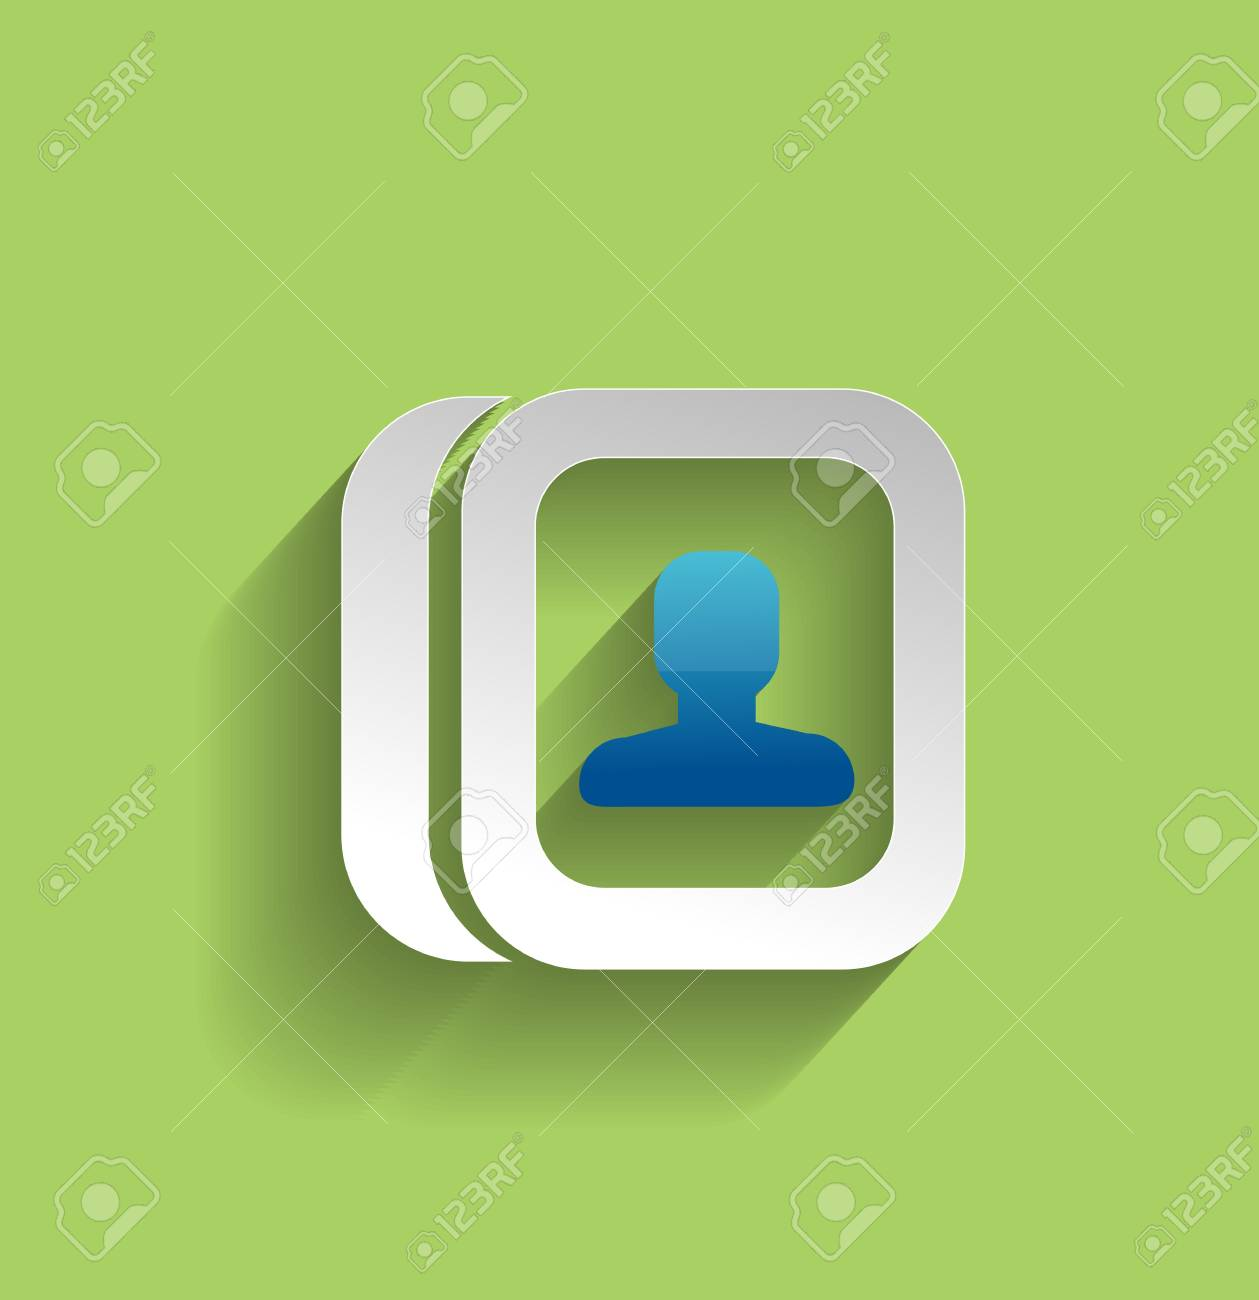 contacts modern flat icon Stock Vector - 21220423